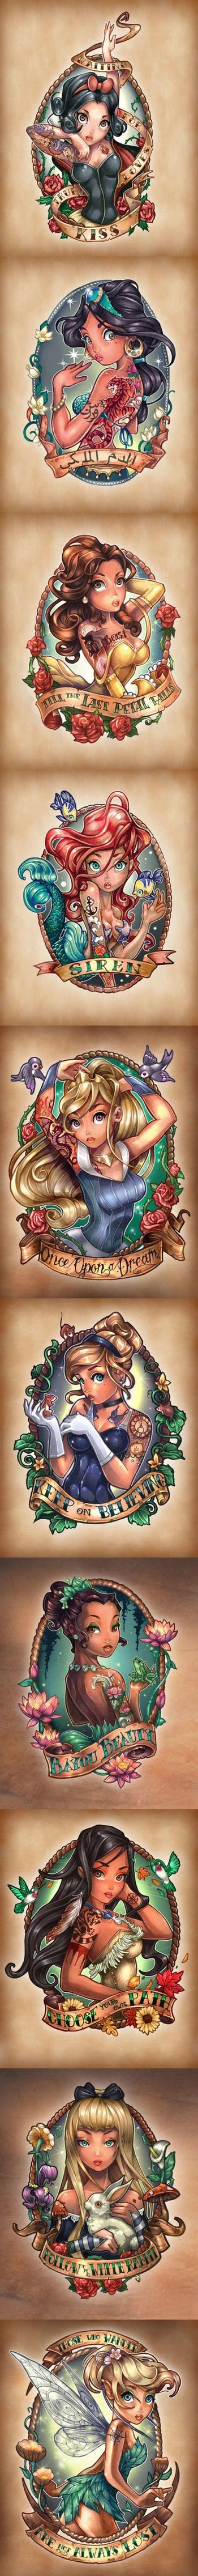 8 Disney Princesses as Tattooed Pinup Girls! ( Alice and Tinkerbell)